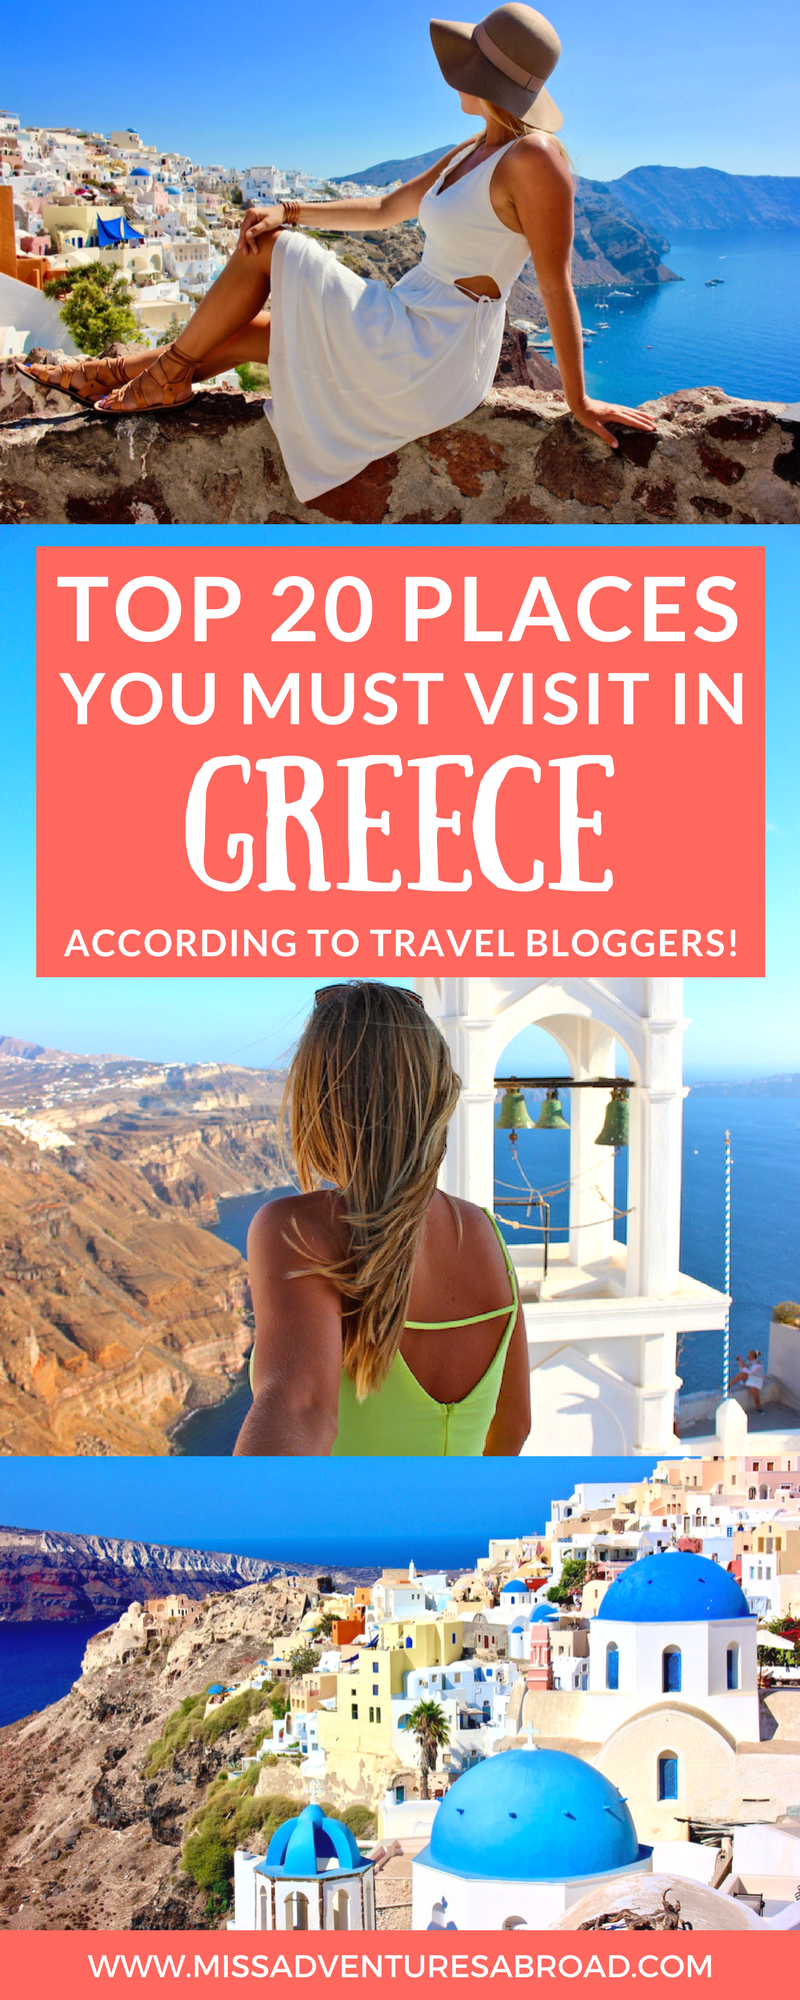 20 stunning destinations in greece travel bloggers love for Top 20 vacation destinations